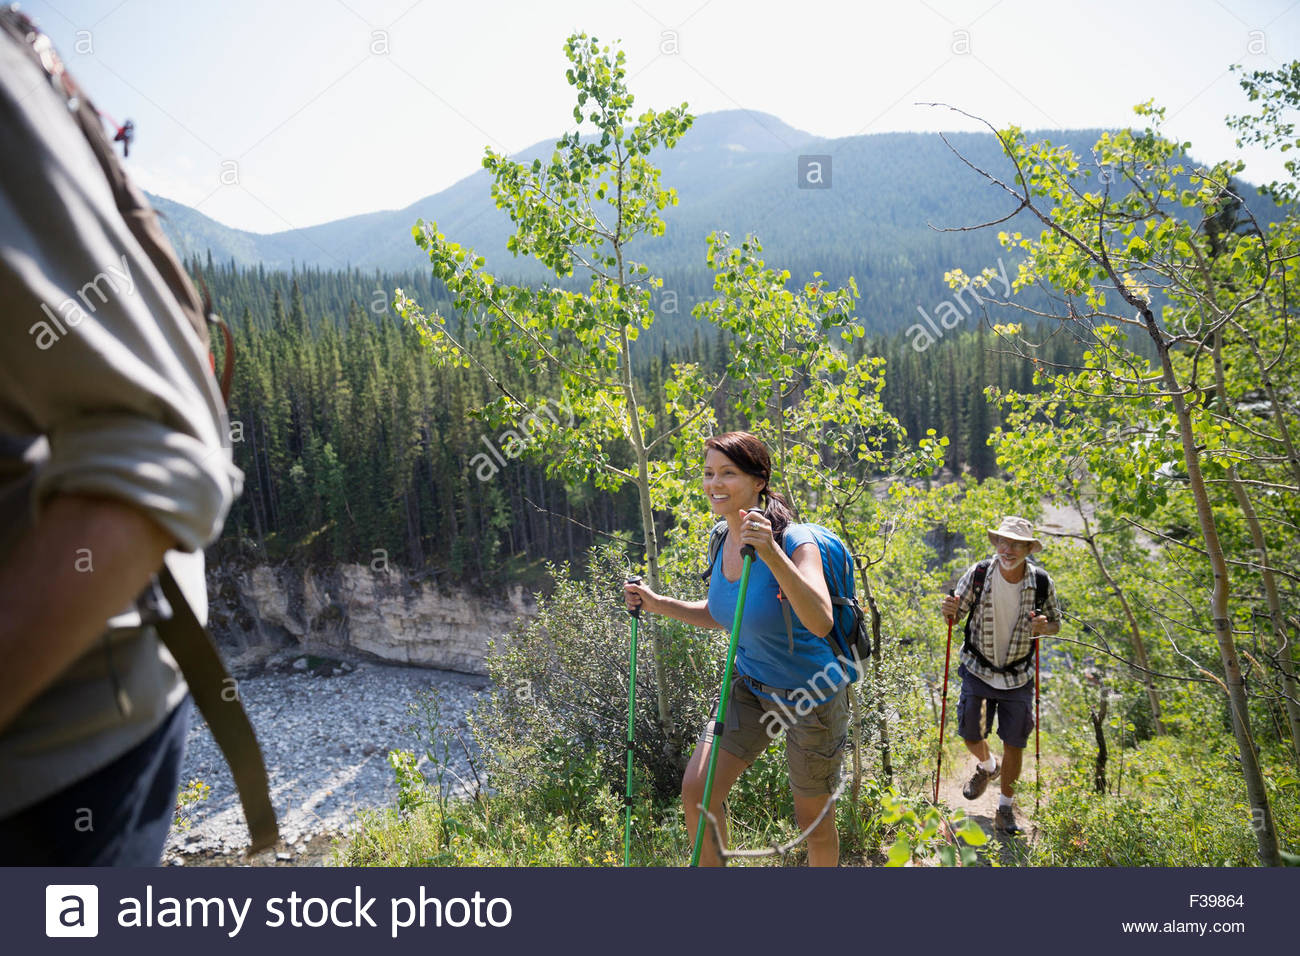 Hikers with poles on trail - Stock Image